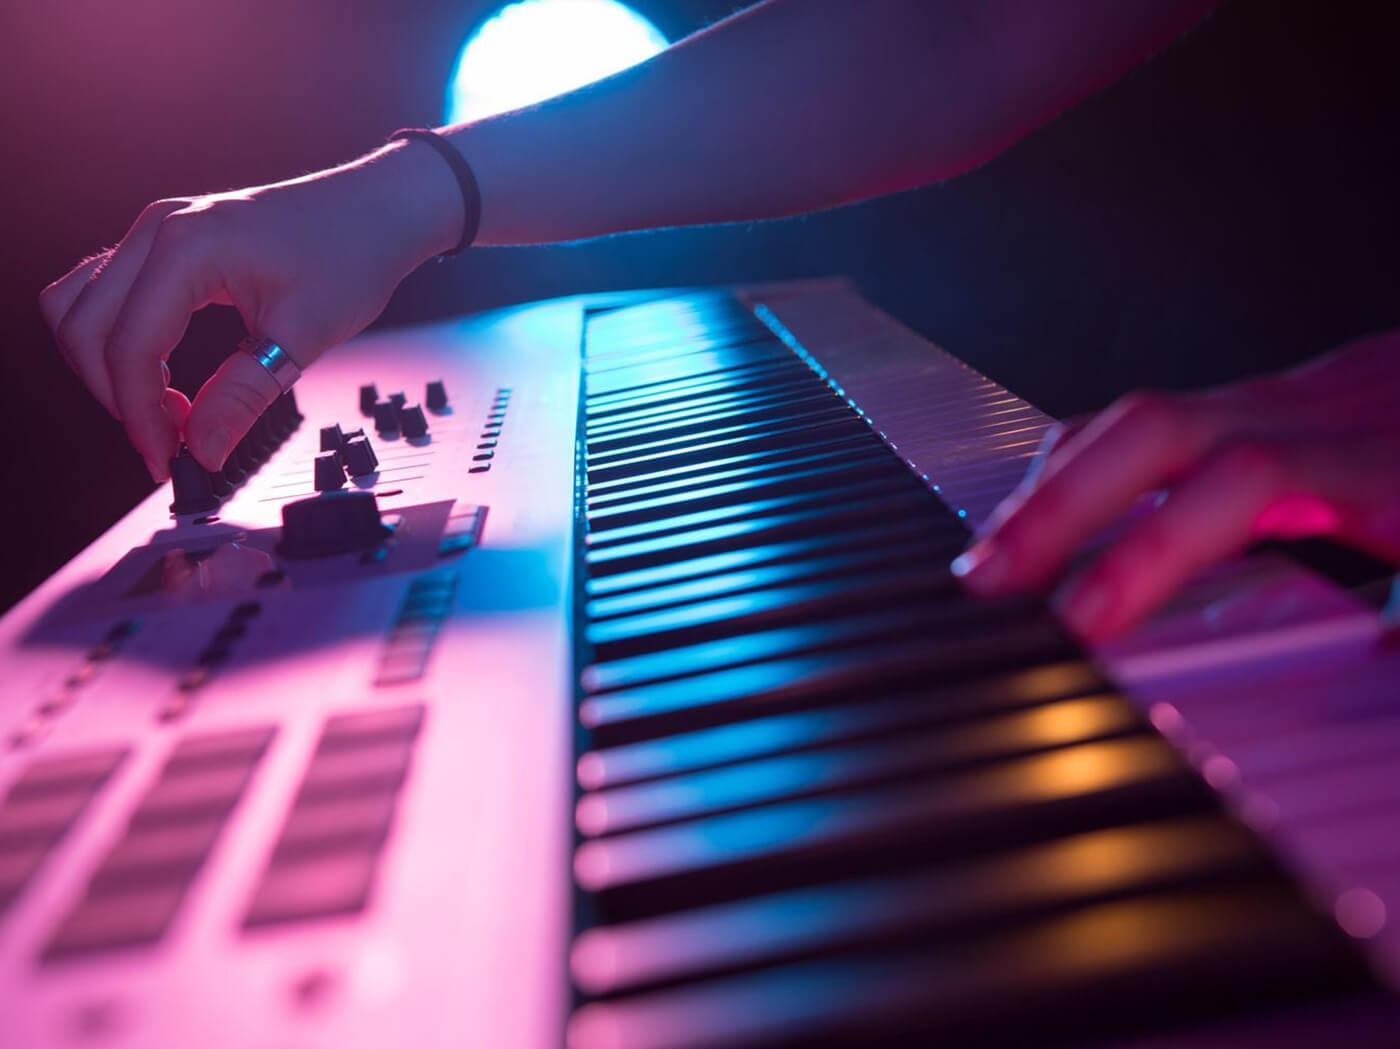 Arturia's KeyLab 88 MkII is a powerful keyboard and controller